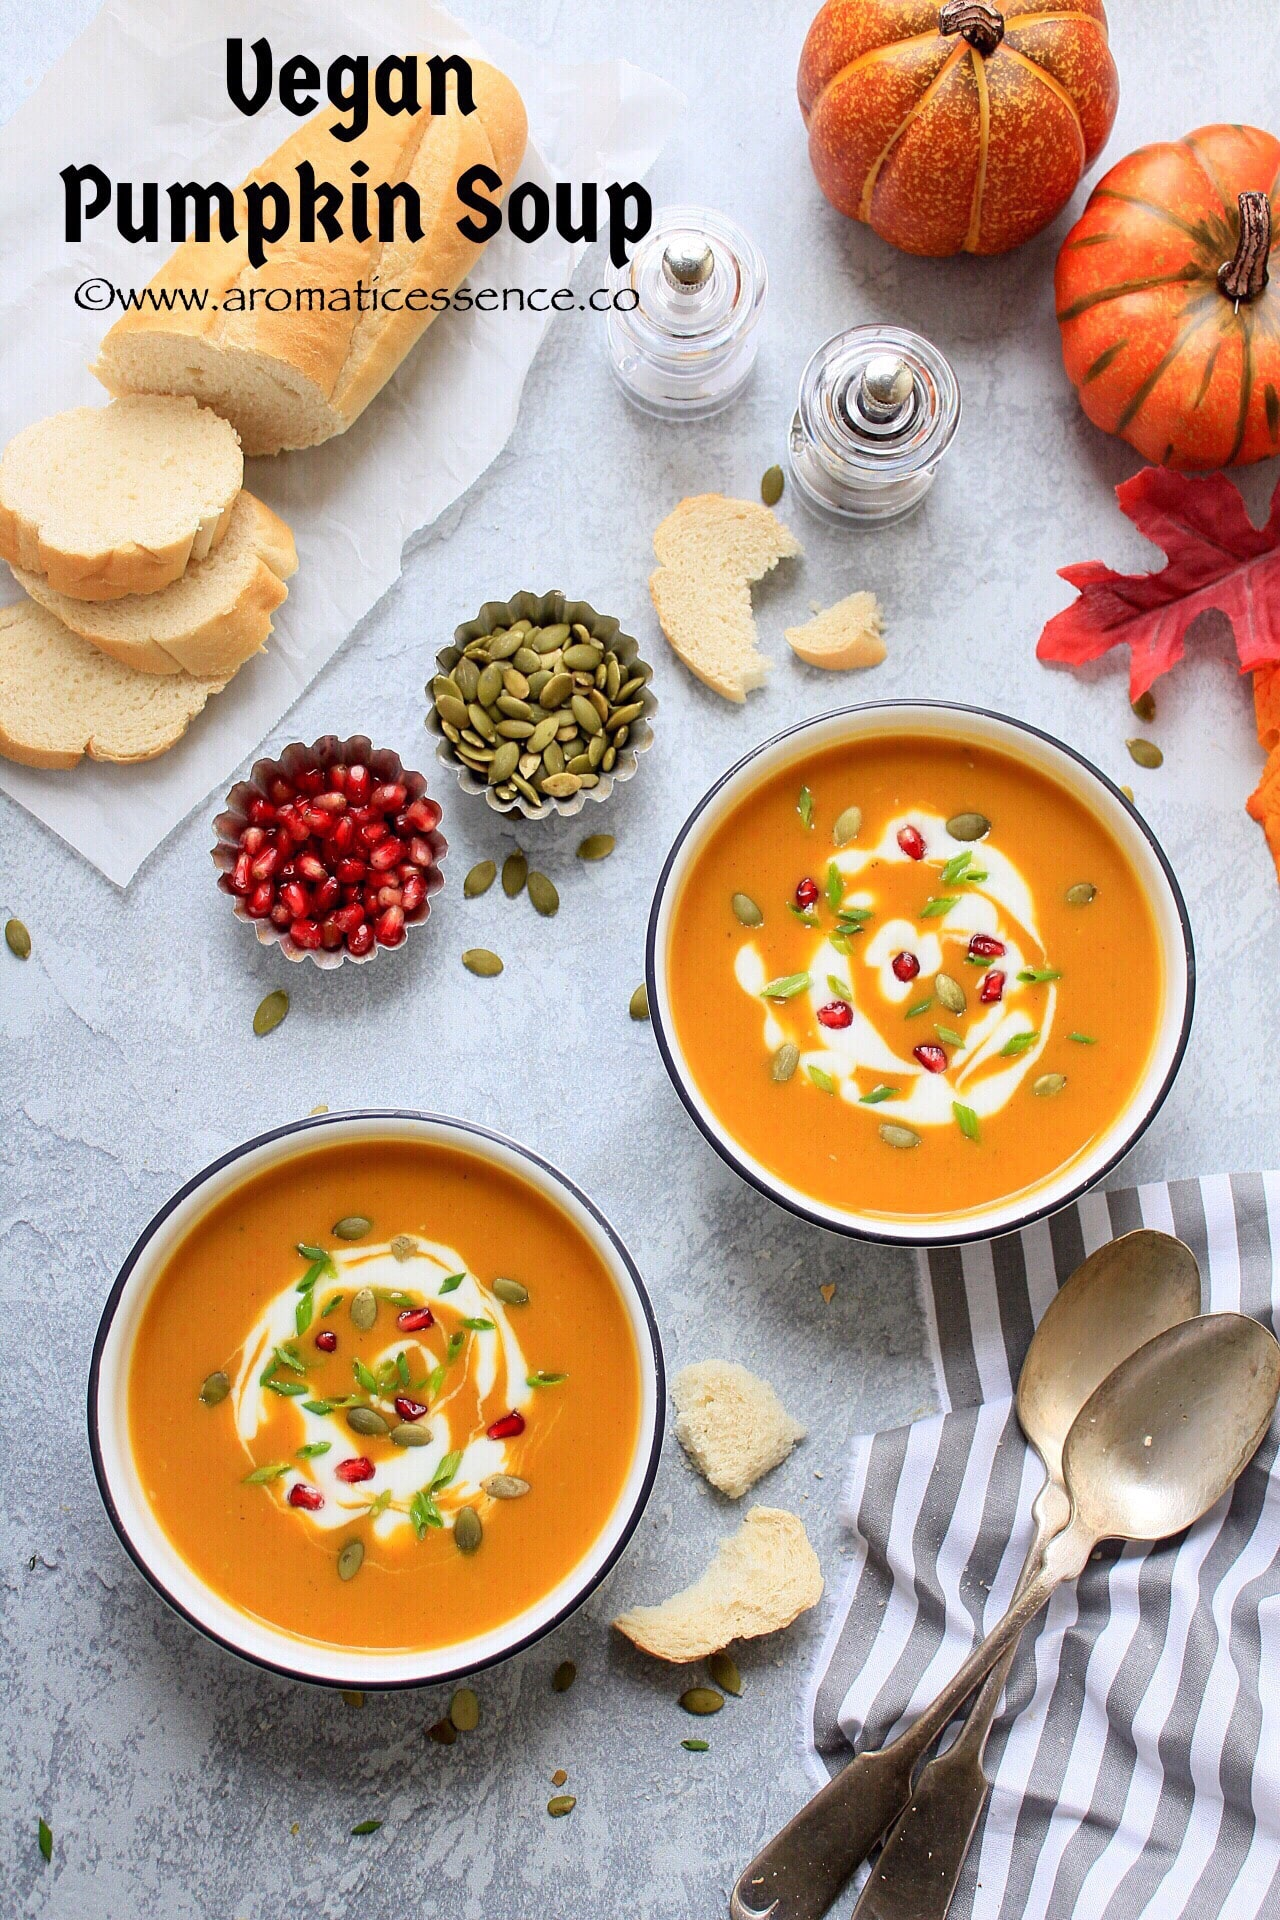 Pumpkin Soup | How To Make Pumpkin Soup (Vegan)